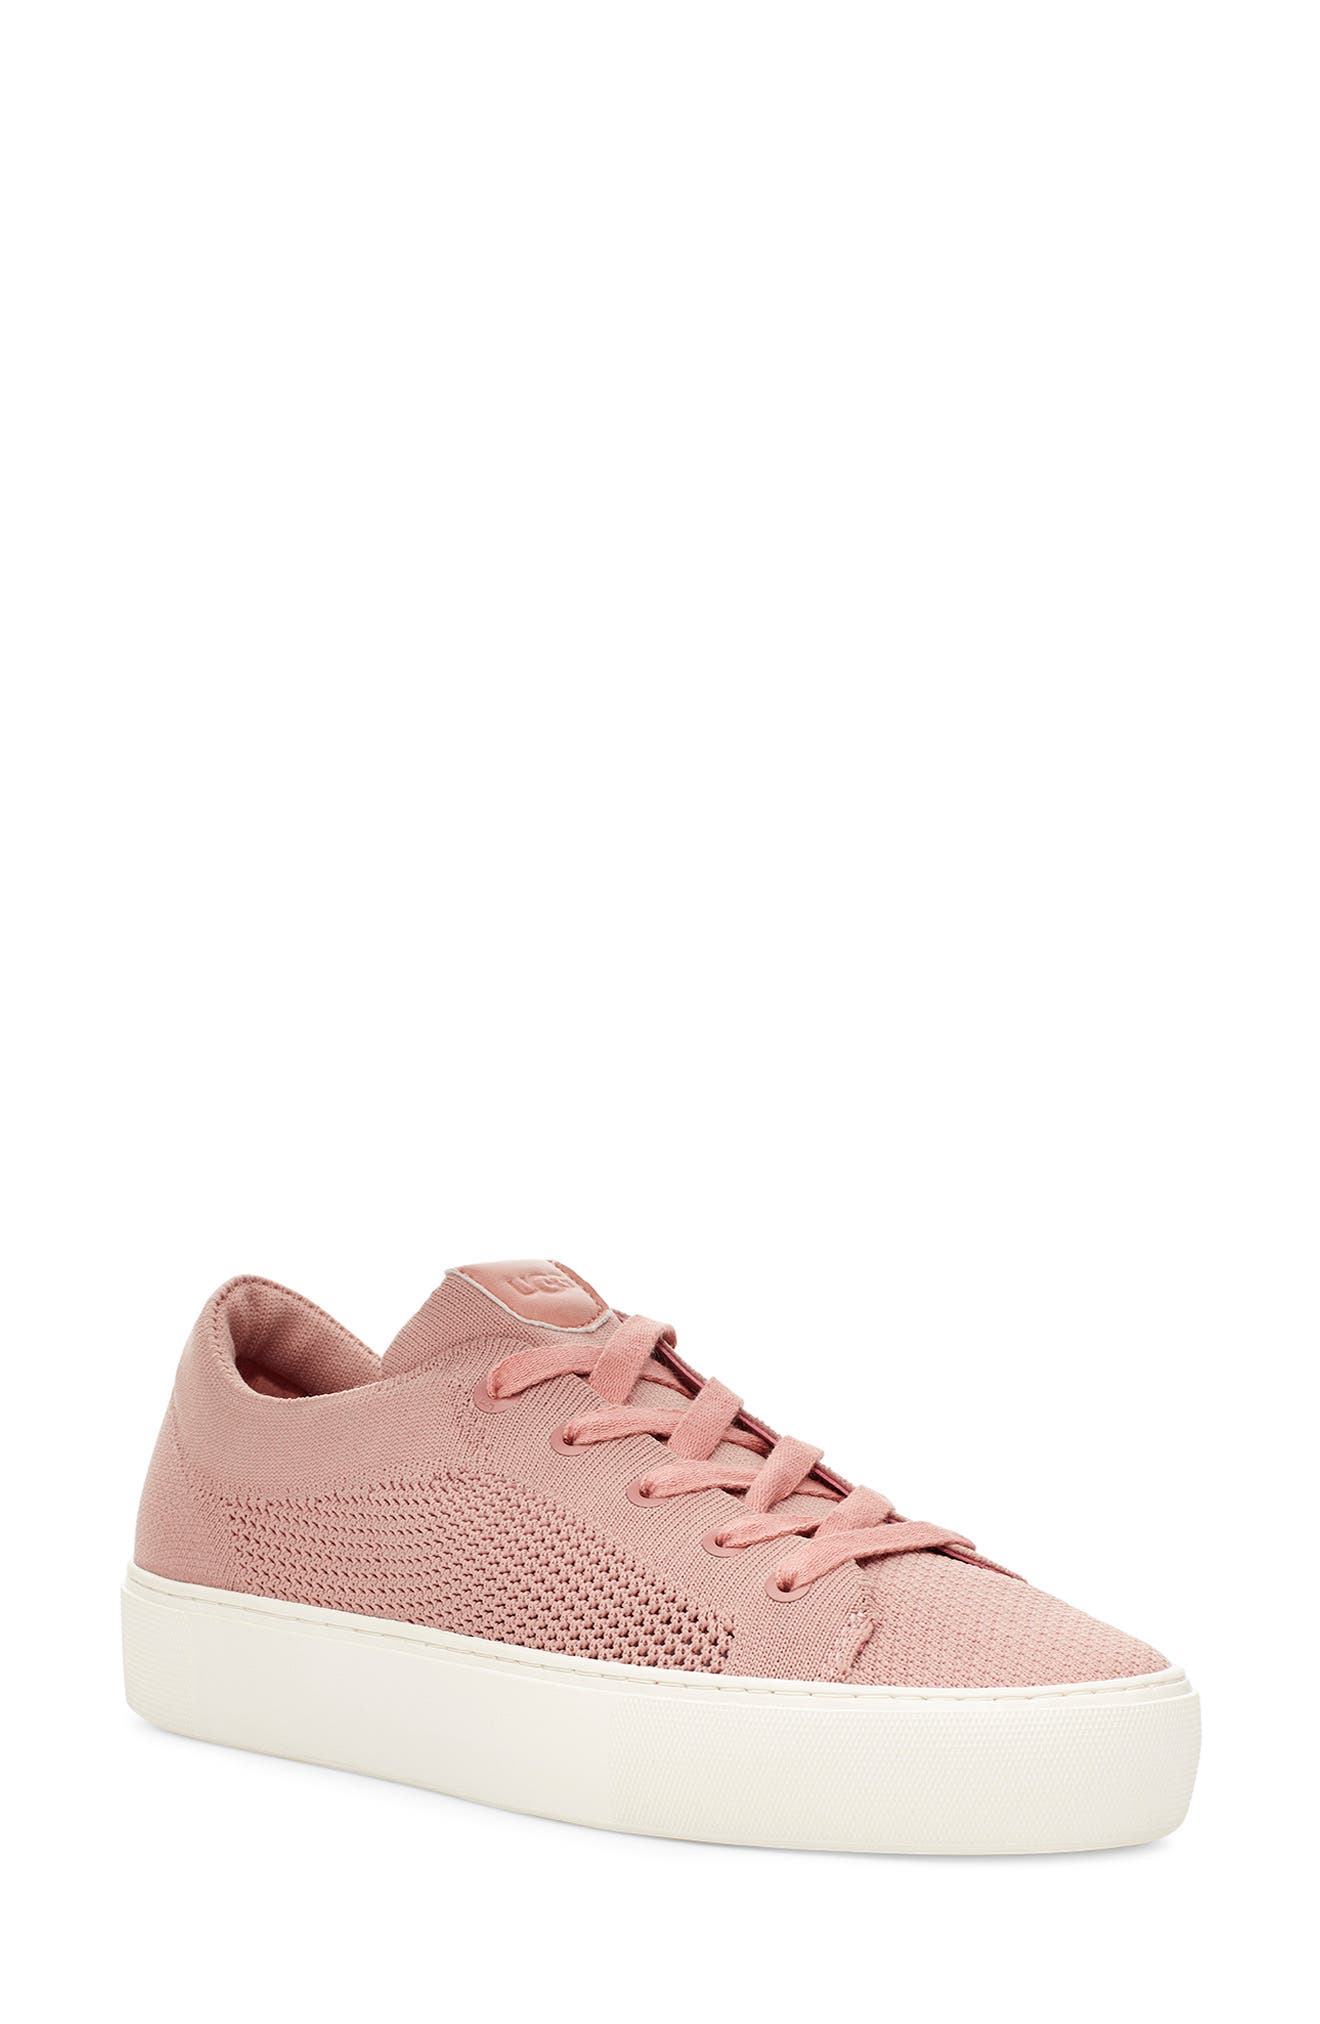 A breezy knit upper elevates the warm-weather appeal of a street-chic lace-up sneaker grounded by a chunky platform cupsole. Style Name: UGG Zilo Knit Platform Sneaker (Women). Style Number: 5999378. Available in stores.